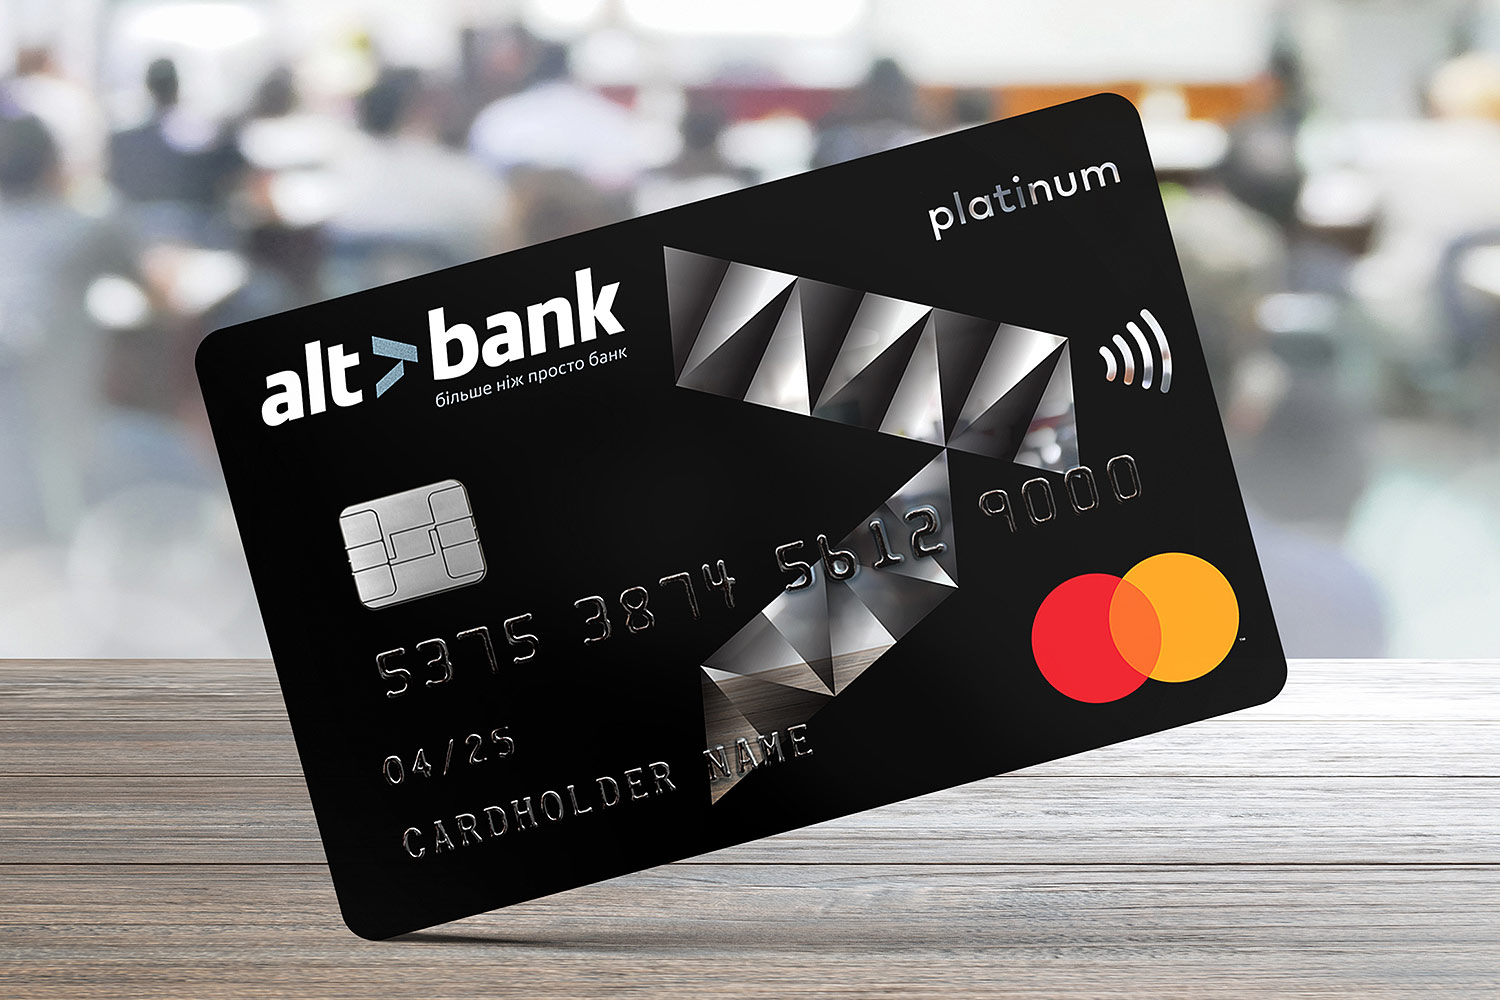 Altbank Platinum premium card design. Printing on foiled plastic.